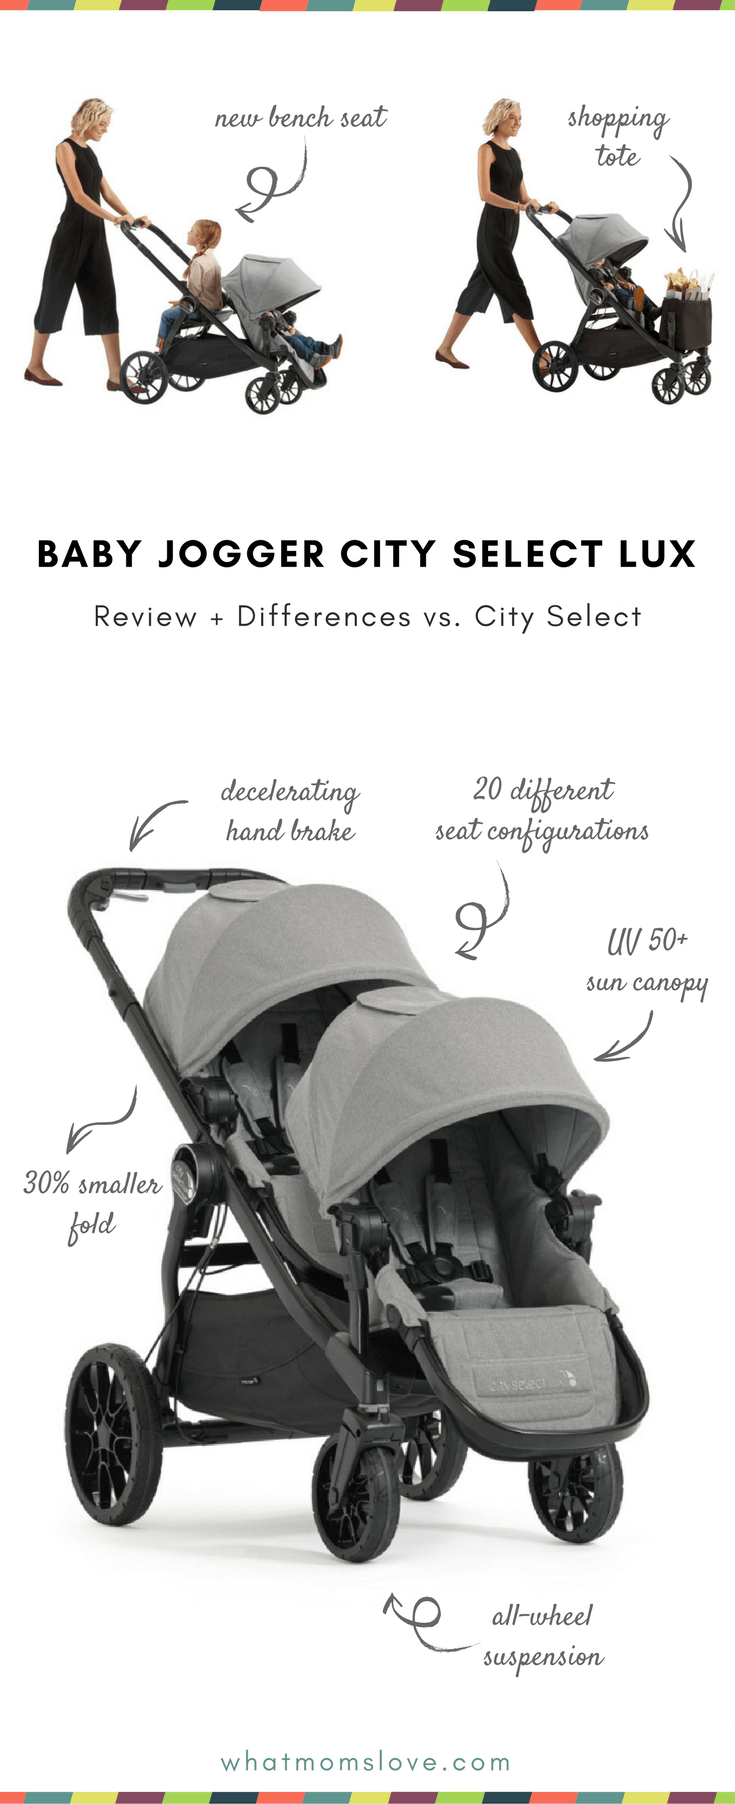 Car Seat Stroller Travel System Reviews Baby Jogger City Select Lux Review Differences Between